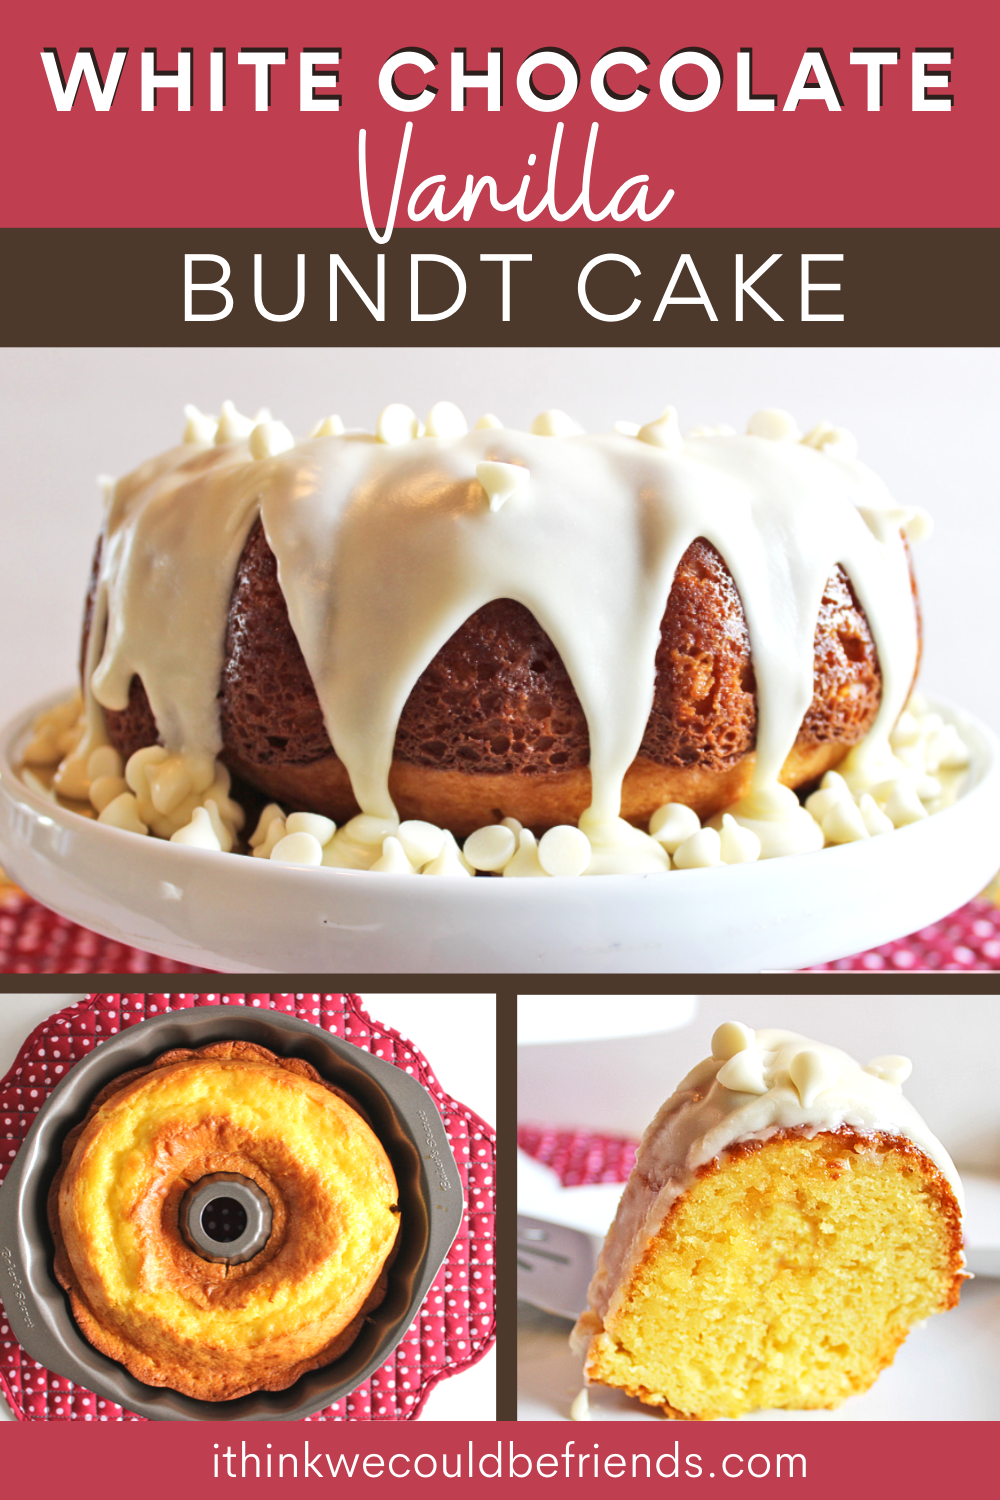 The Best White Chocolate Vanilla Bundt Cake Starts With A Yellow Boxed Cake Mix In 2020 Vanilla Bundt Cake Recipes Cake Mix Box Cake Mix